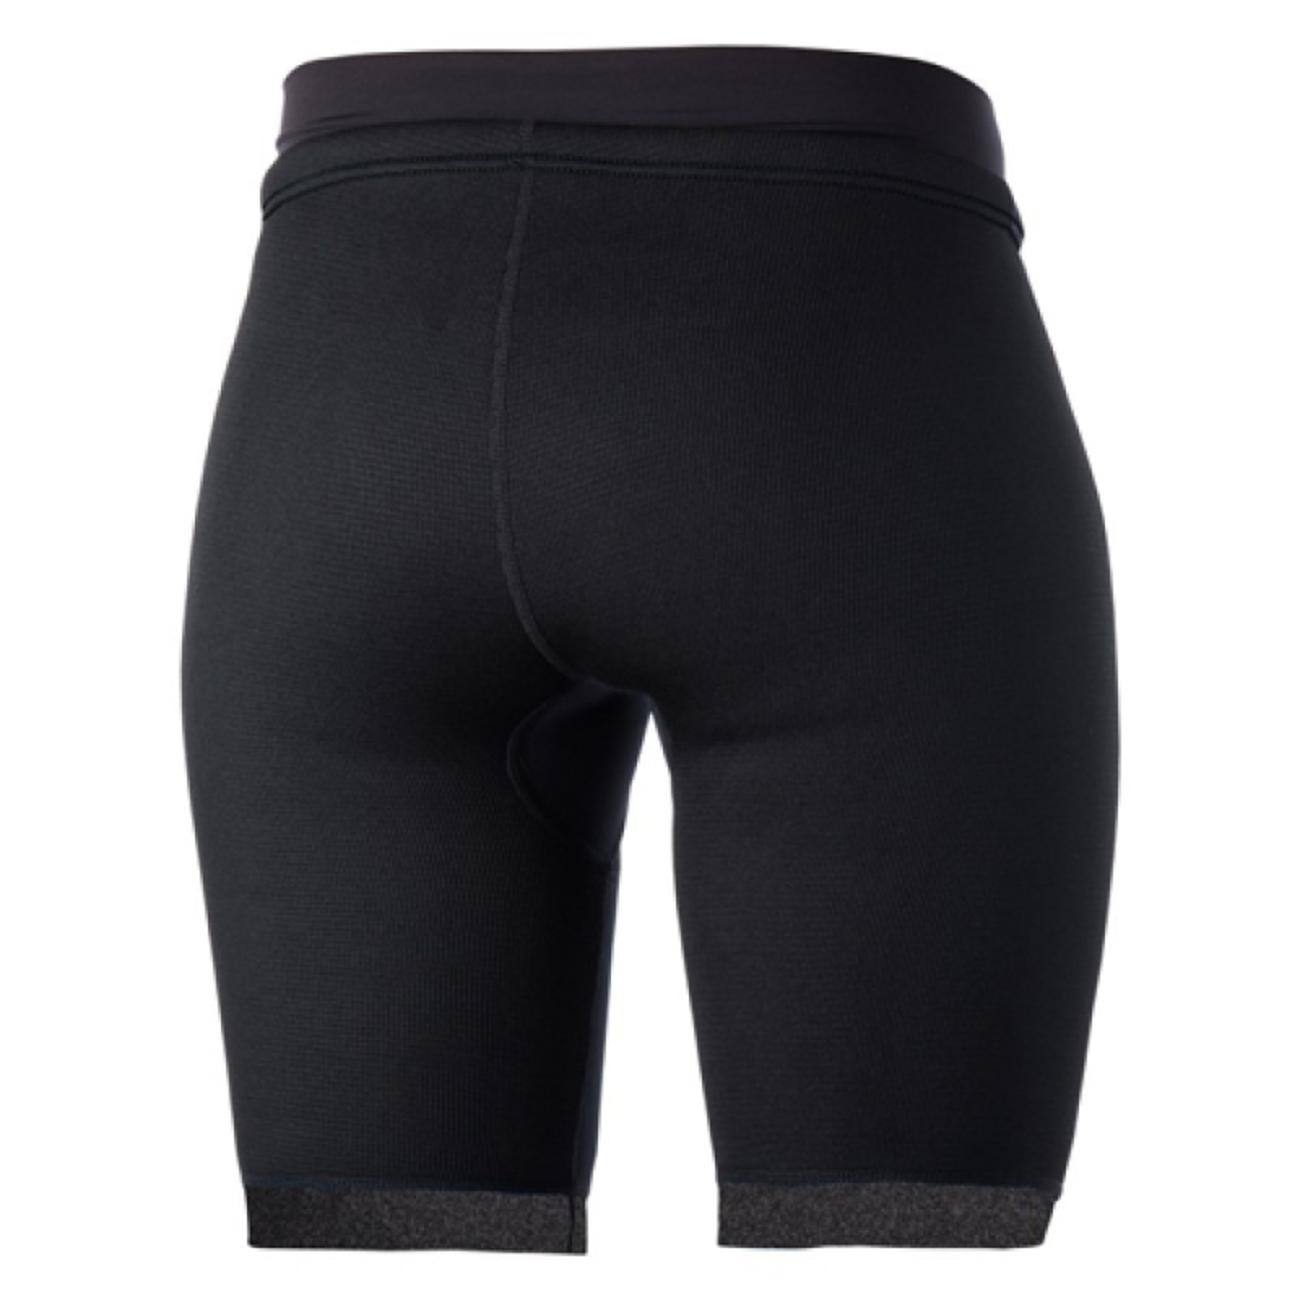 Ultimate Shorts Neoprene 1.5mm Flatlock Women ウェットパンツ レディース